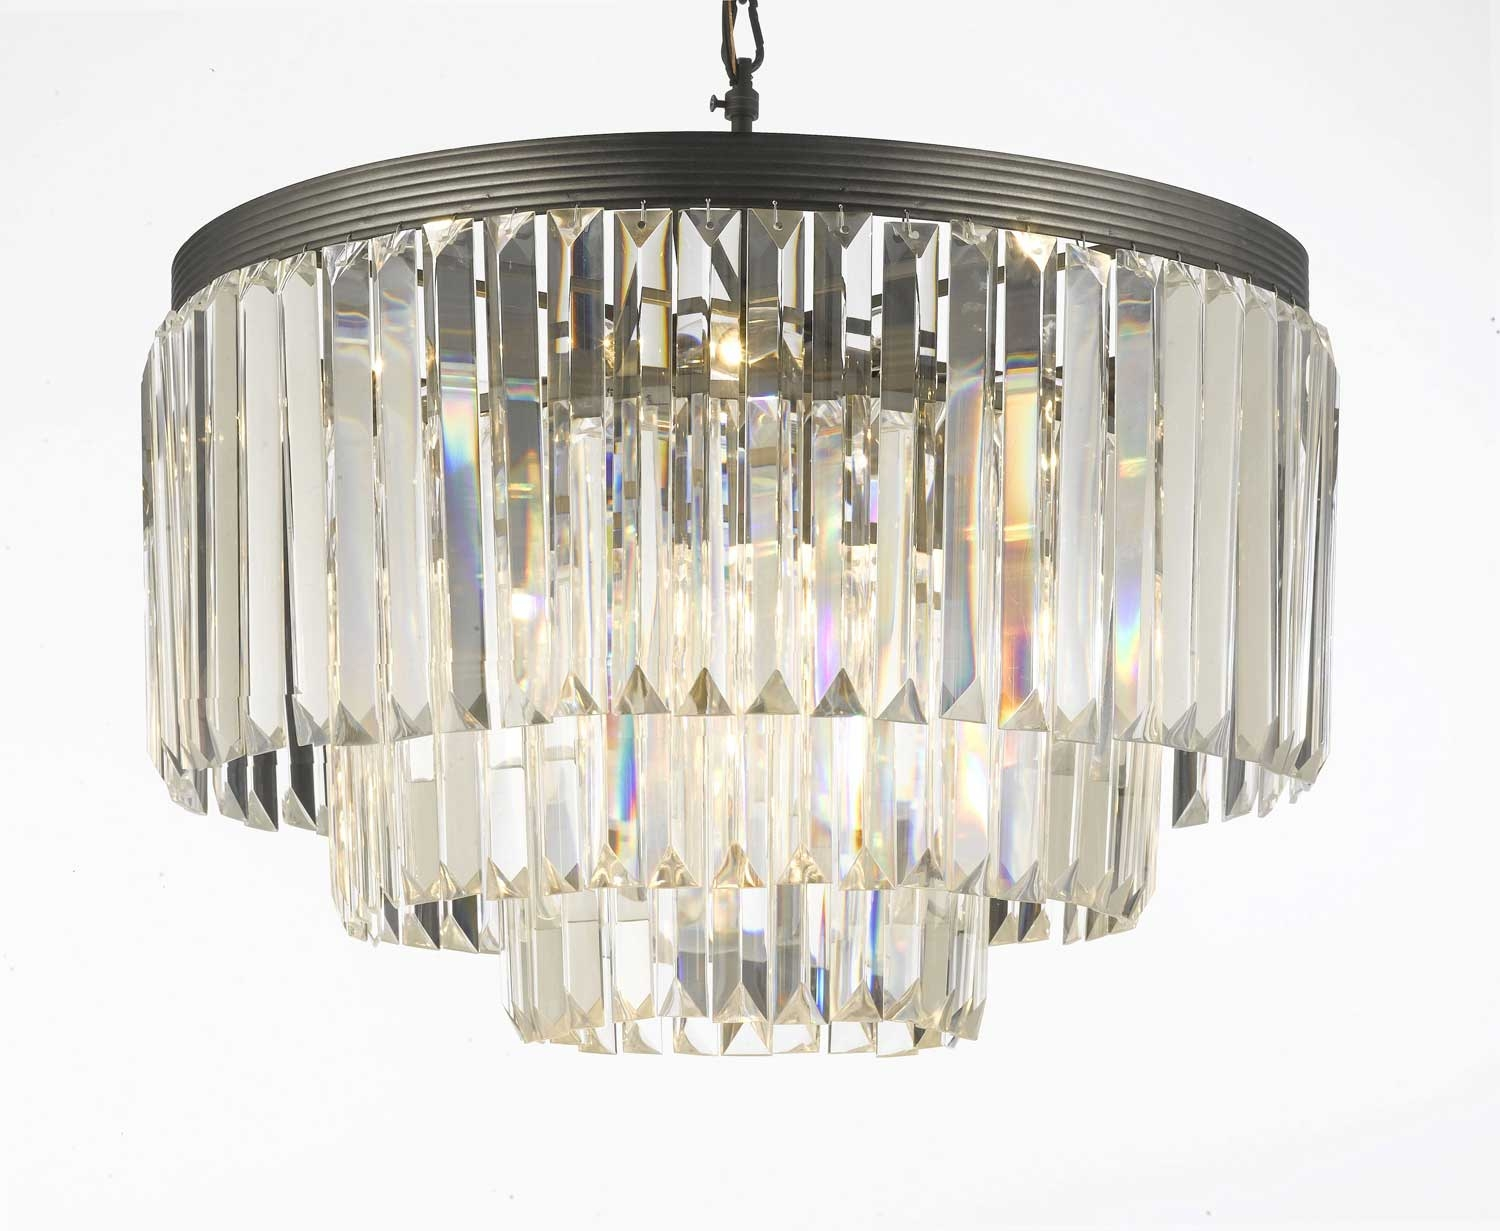 G7 1100 Gallery 18th 19th Century Art Retro Odeon Crystal Throughout Retro Chandeliers (Image 7 of 15)